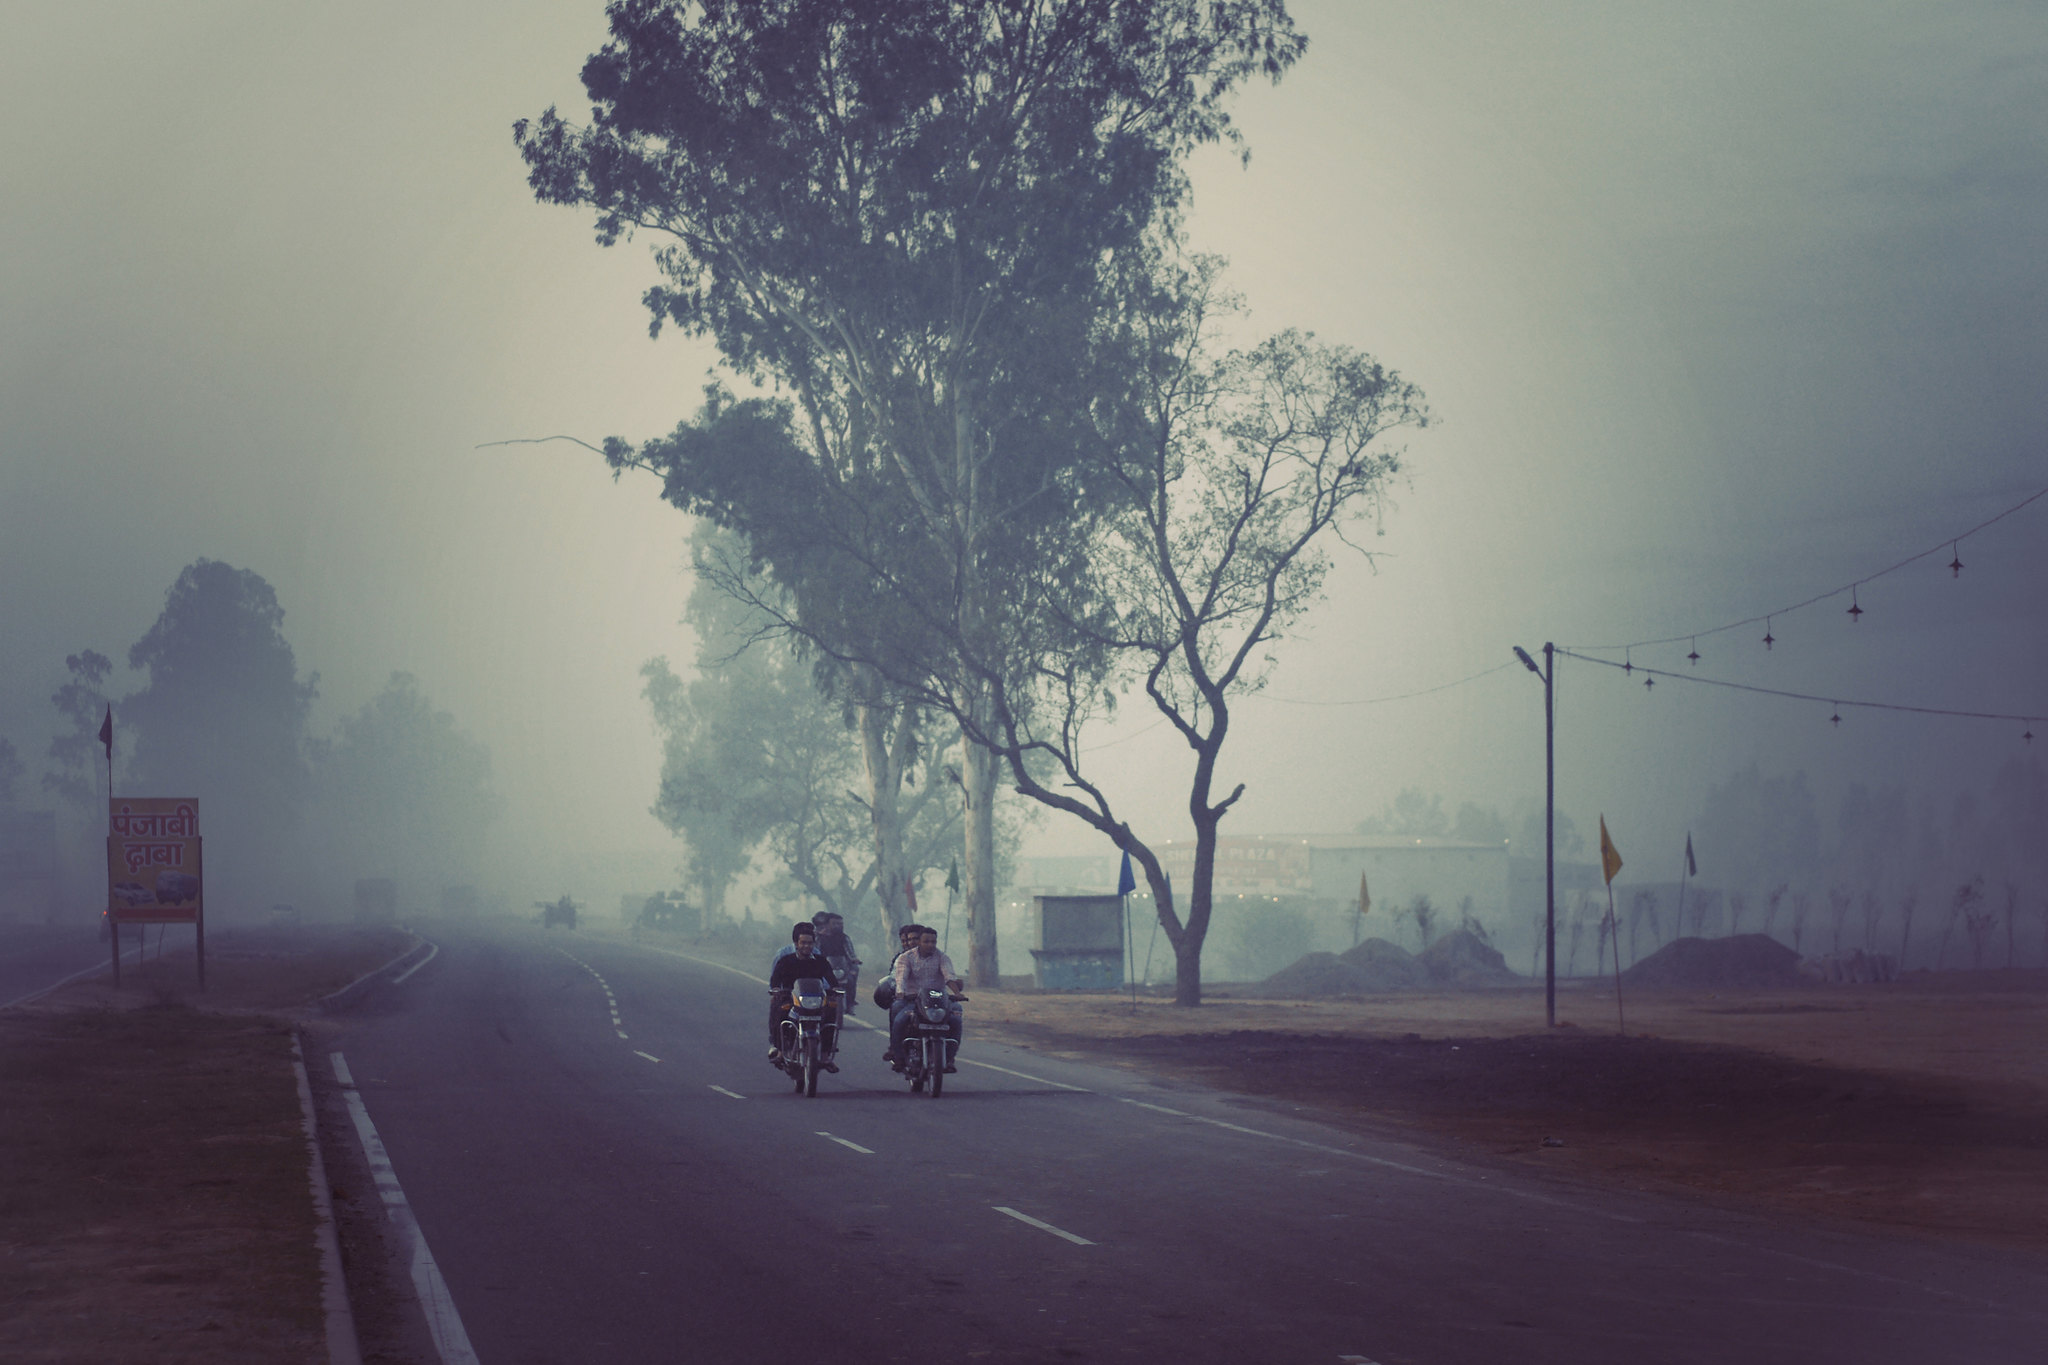 Morning Ride in India